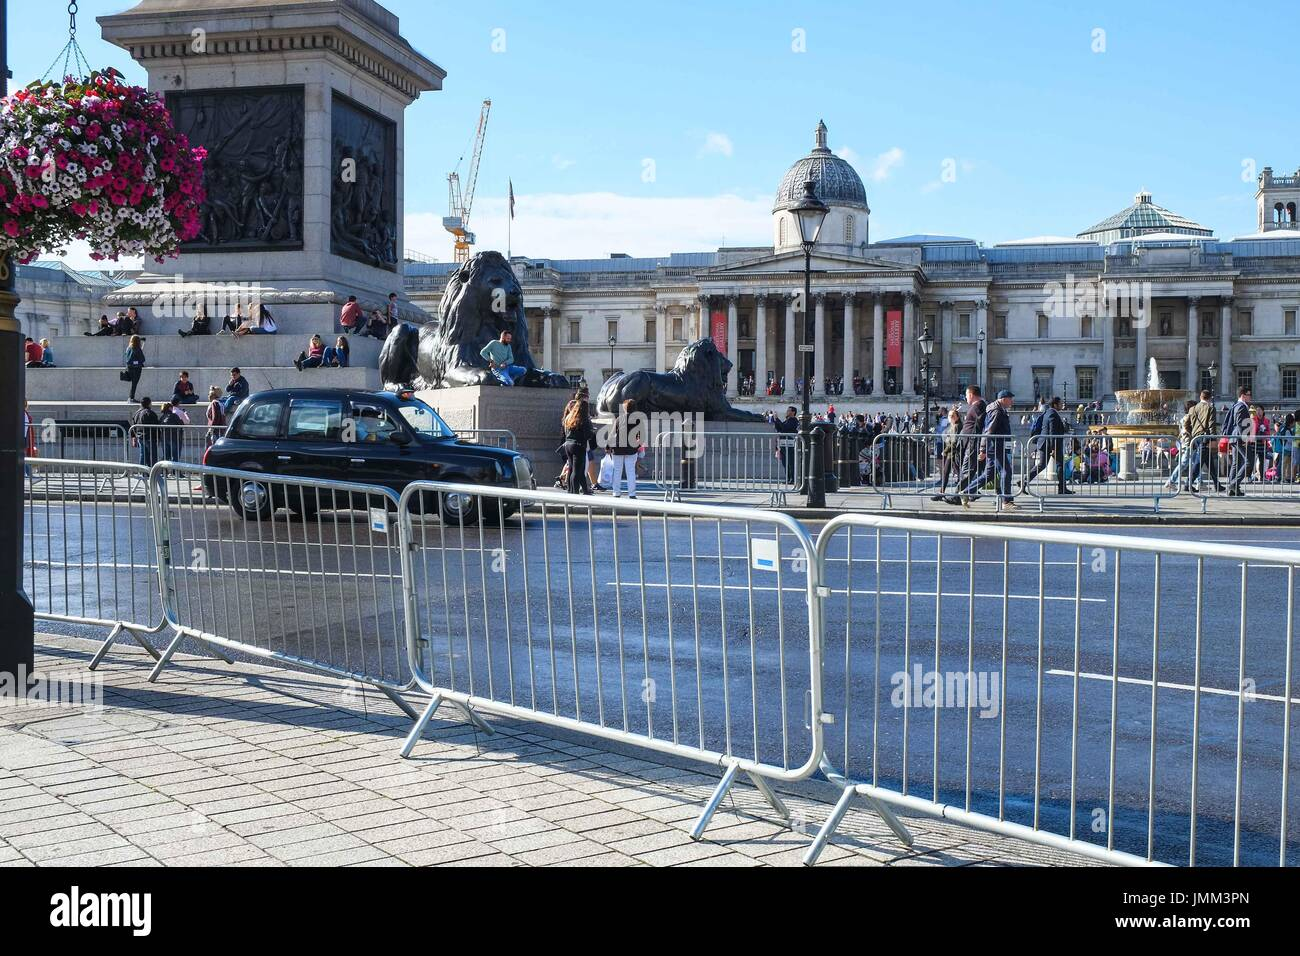 London, UK. 27th July, 2017. Preparation in central London for Prudential Ride London 2017 which takes place between Stock Photo